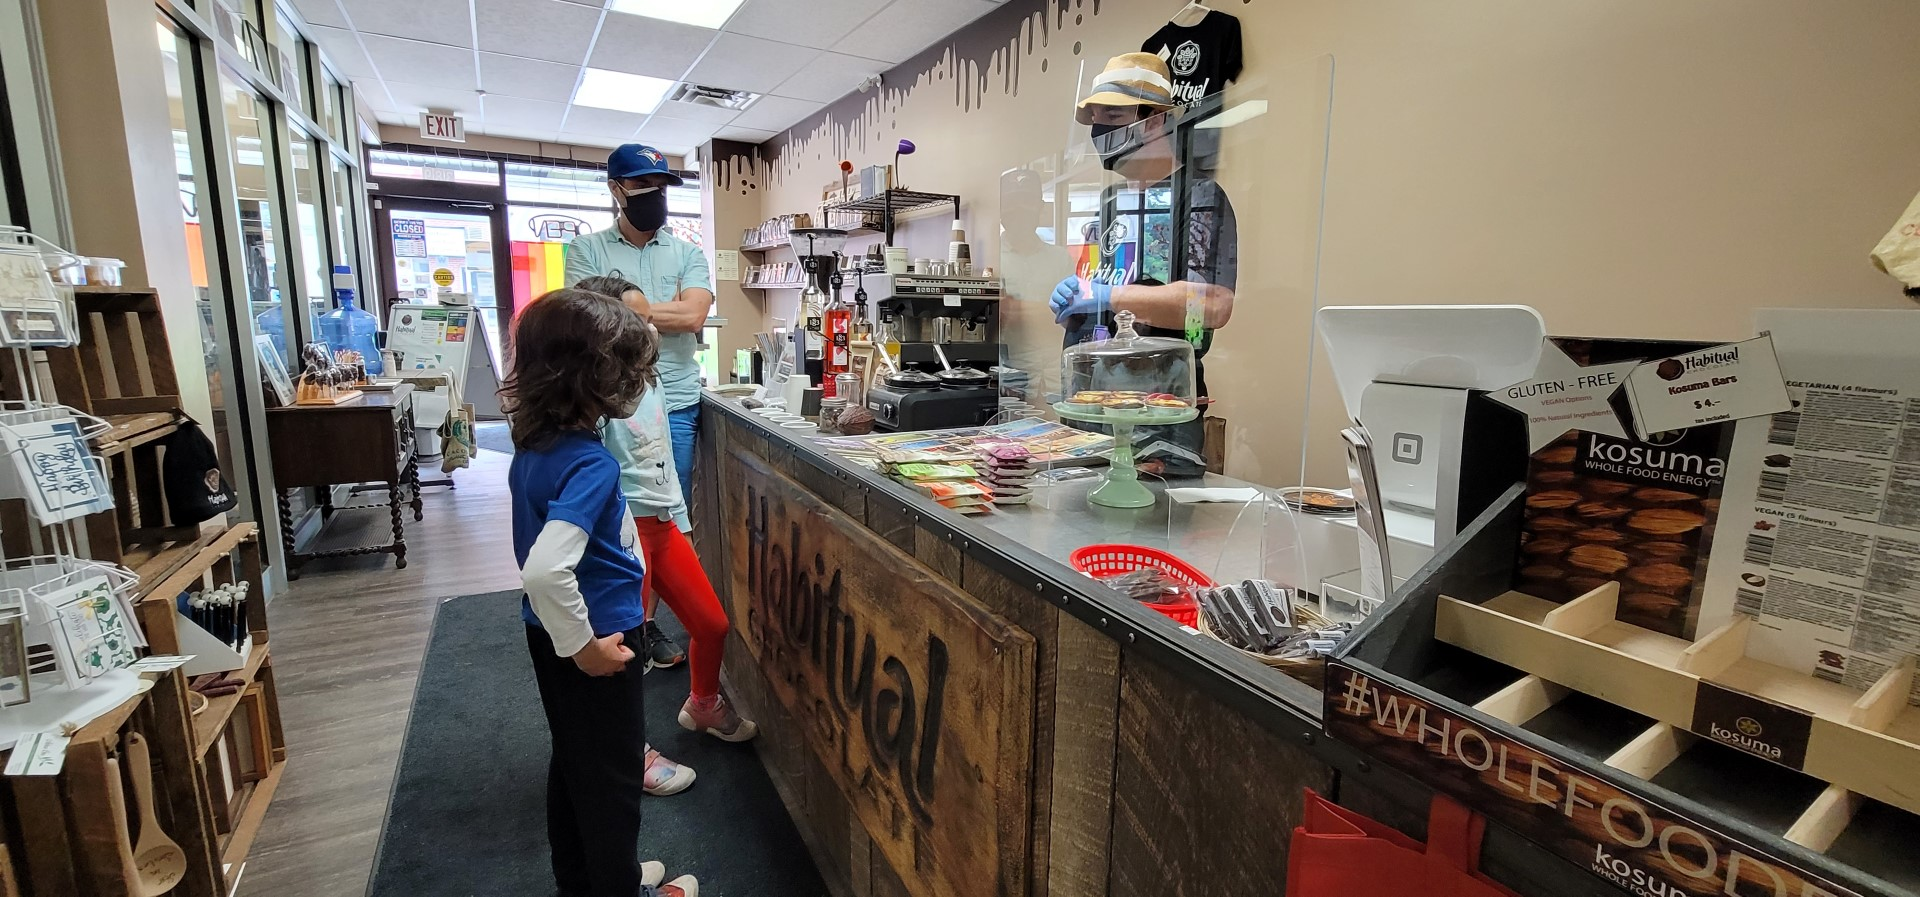 shopping indoors at Habitual Chocolate in Oxford County